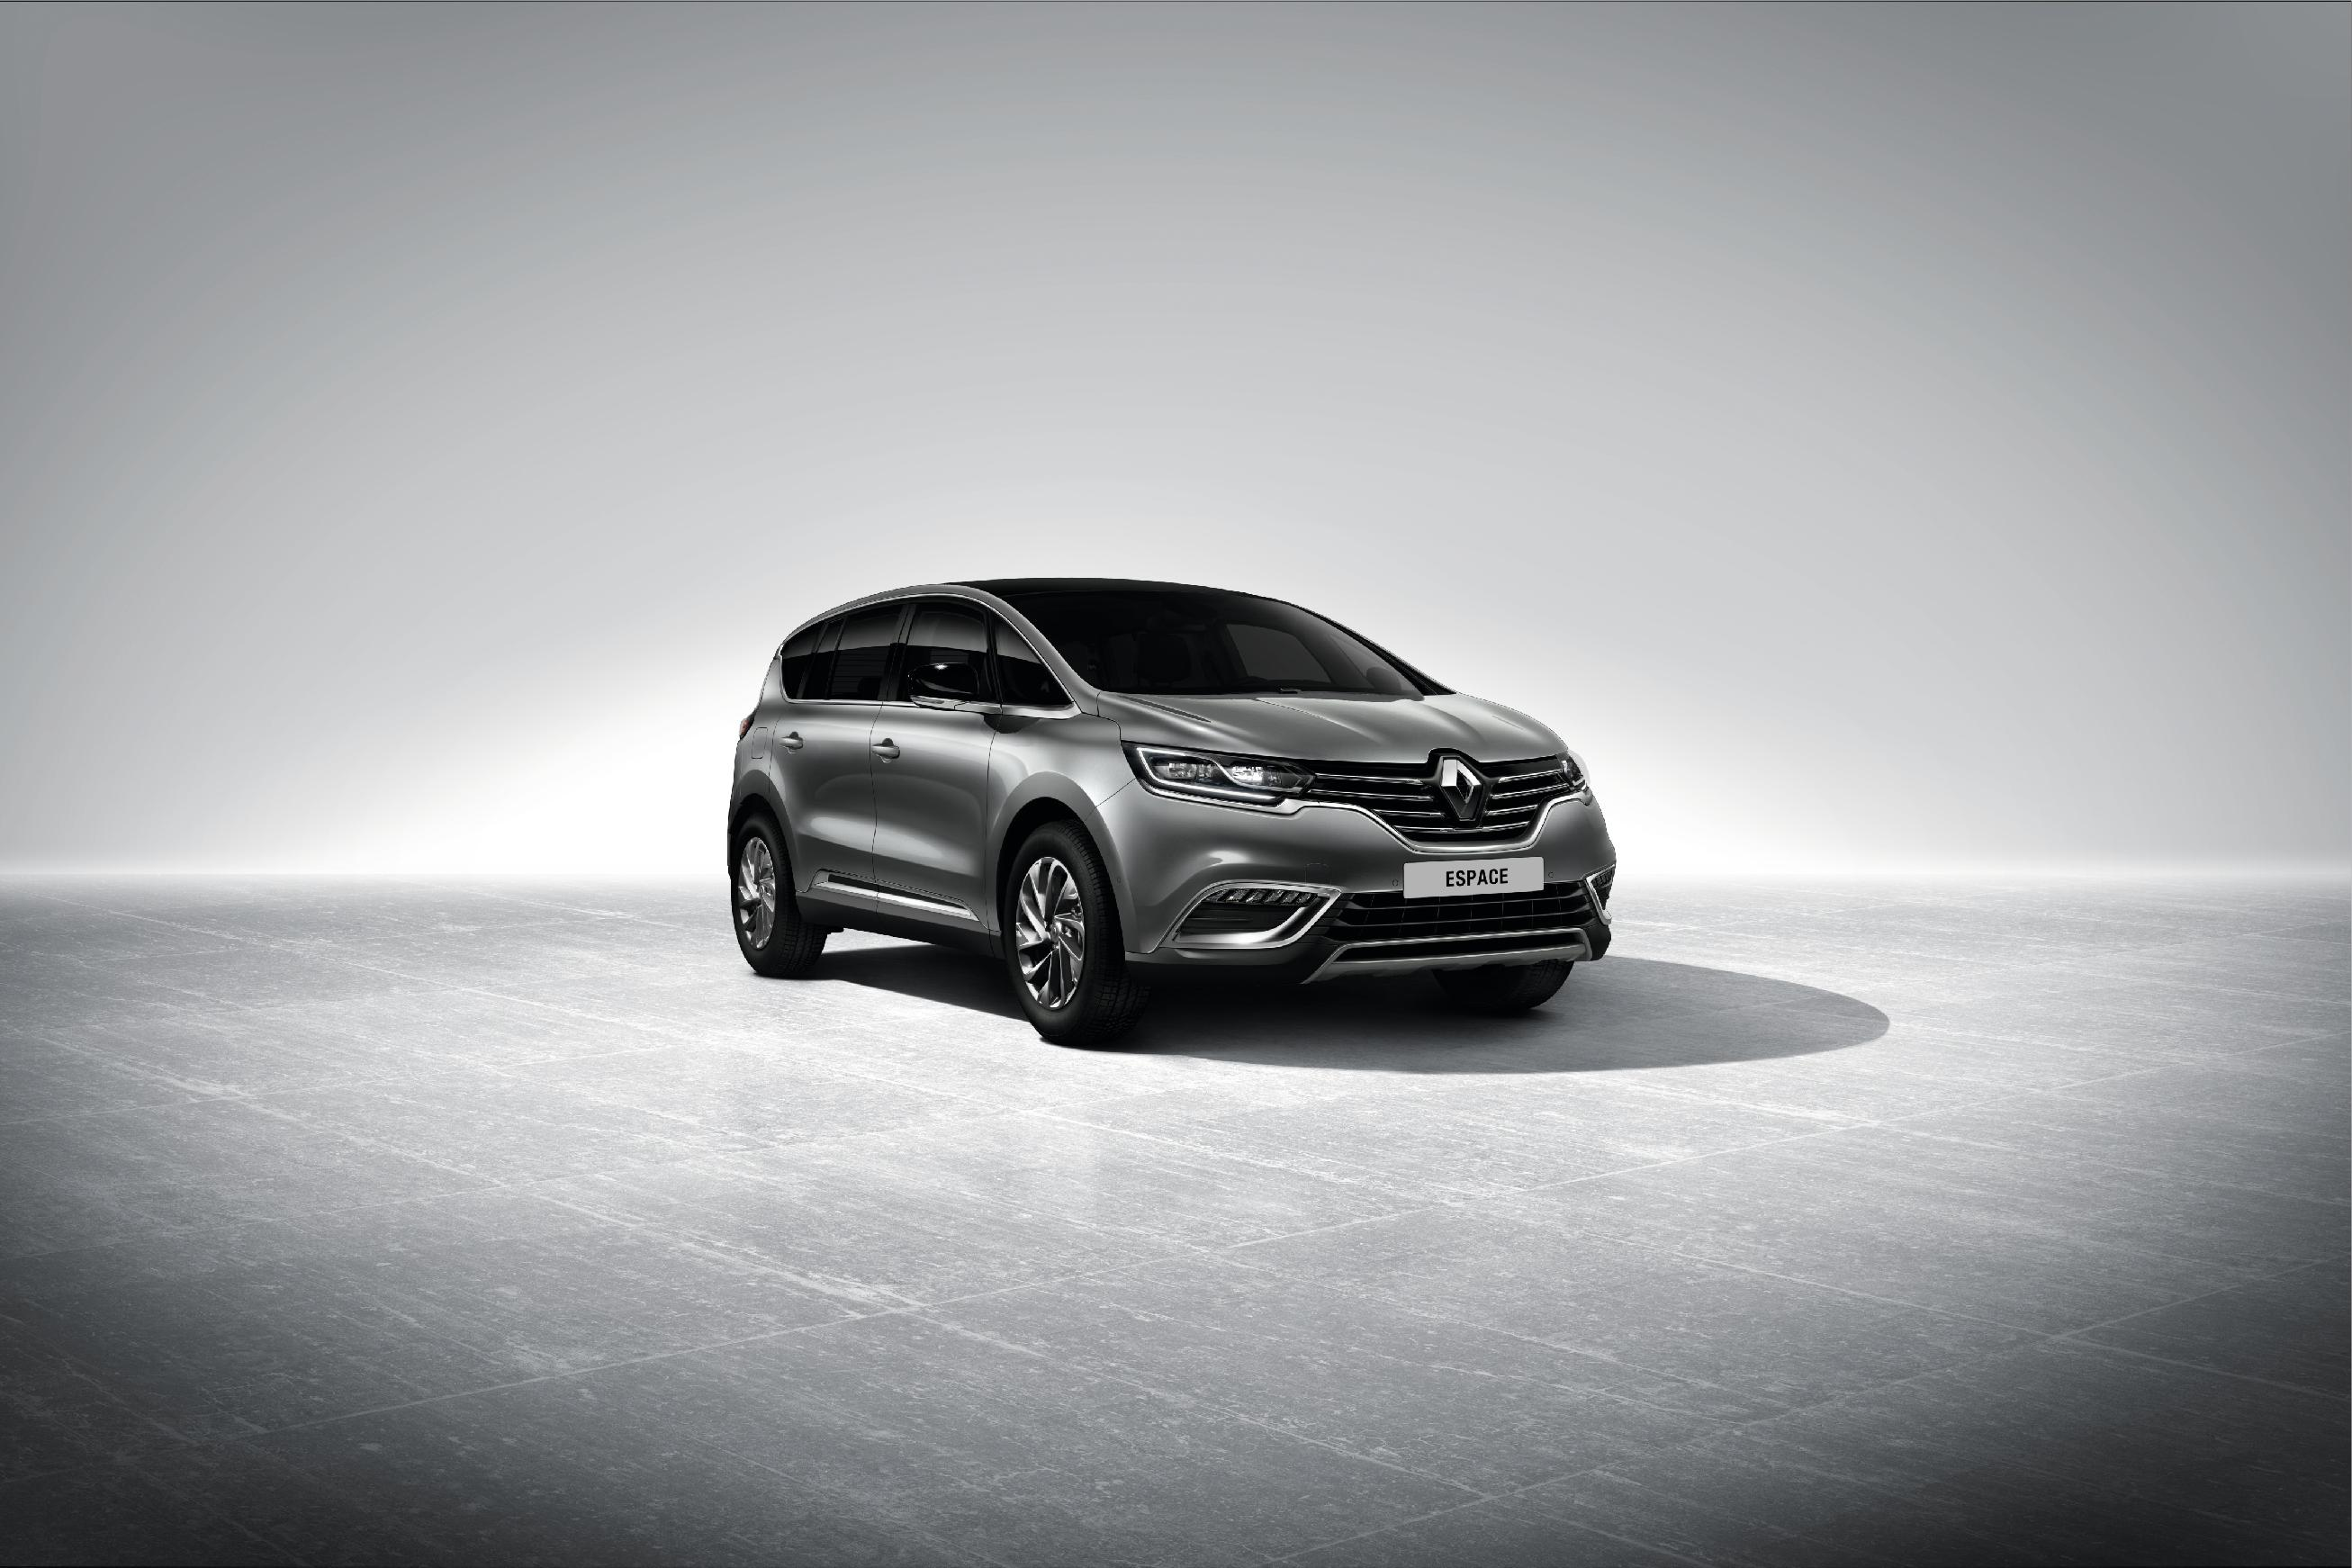 The next-generation Renault Espace is due for launch in 2015.